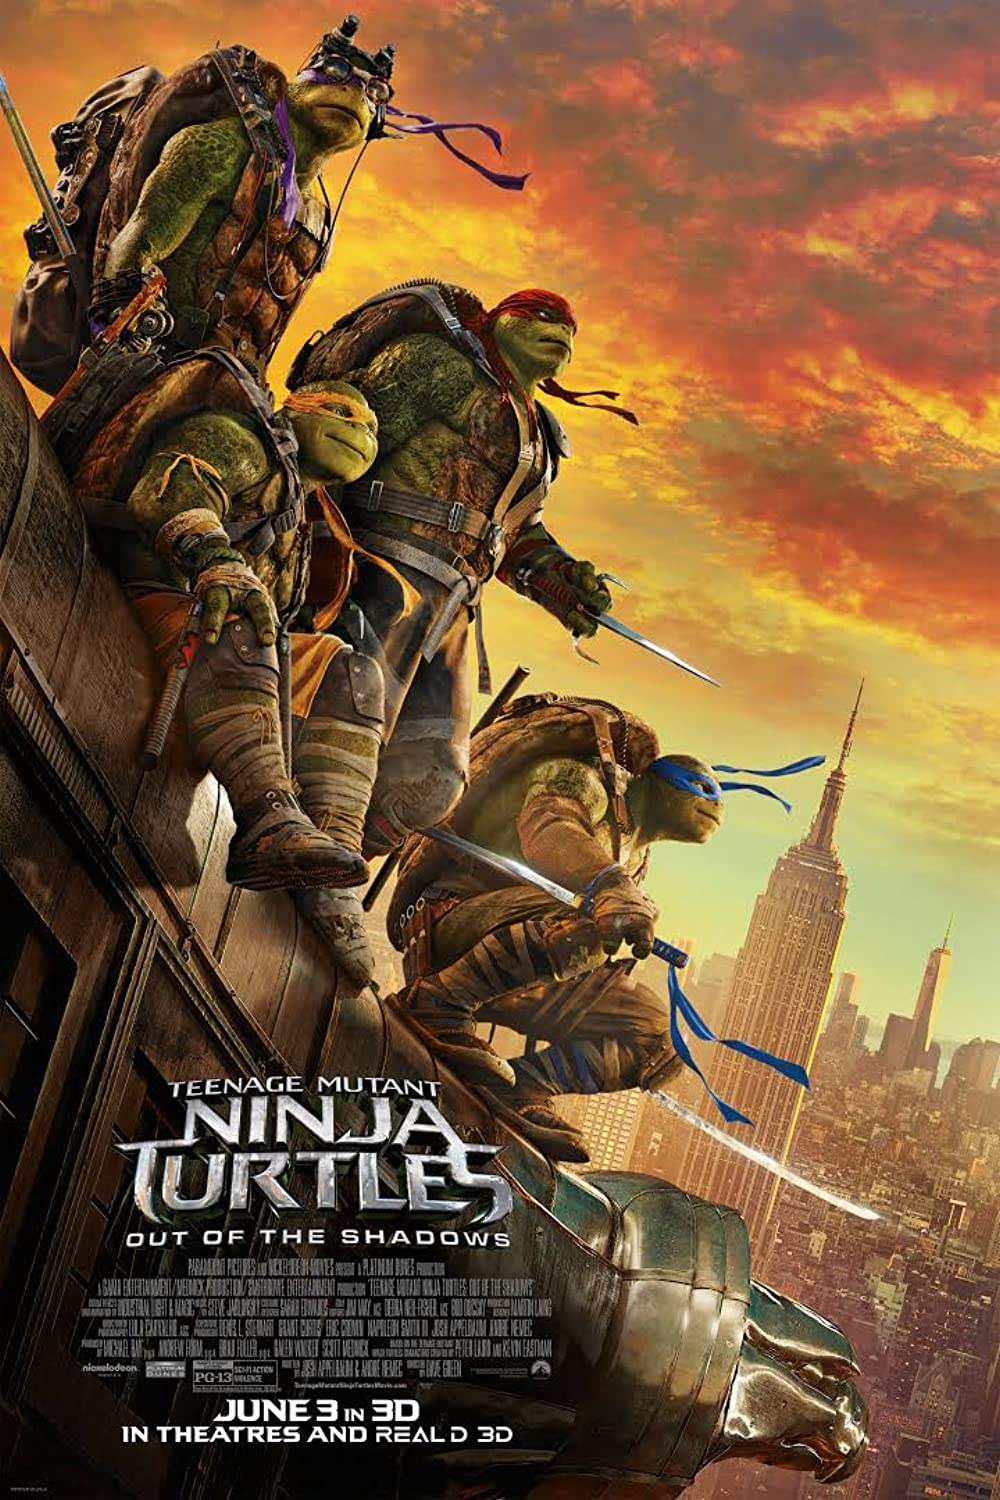 Download Teenage Mutant Ninja Turtles: Out of the Shadows 2016 Hindi Dual Audio 720p BluRay ESubs 800MB